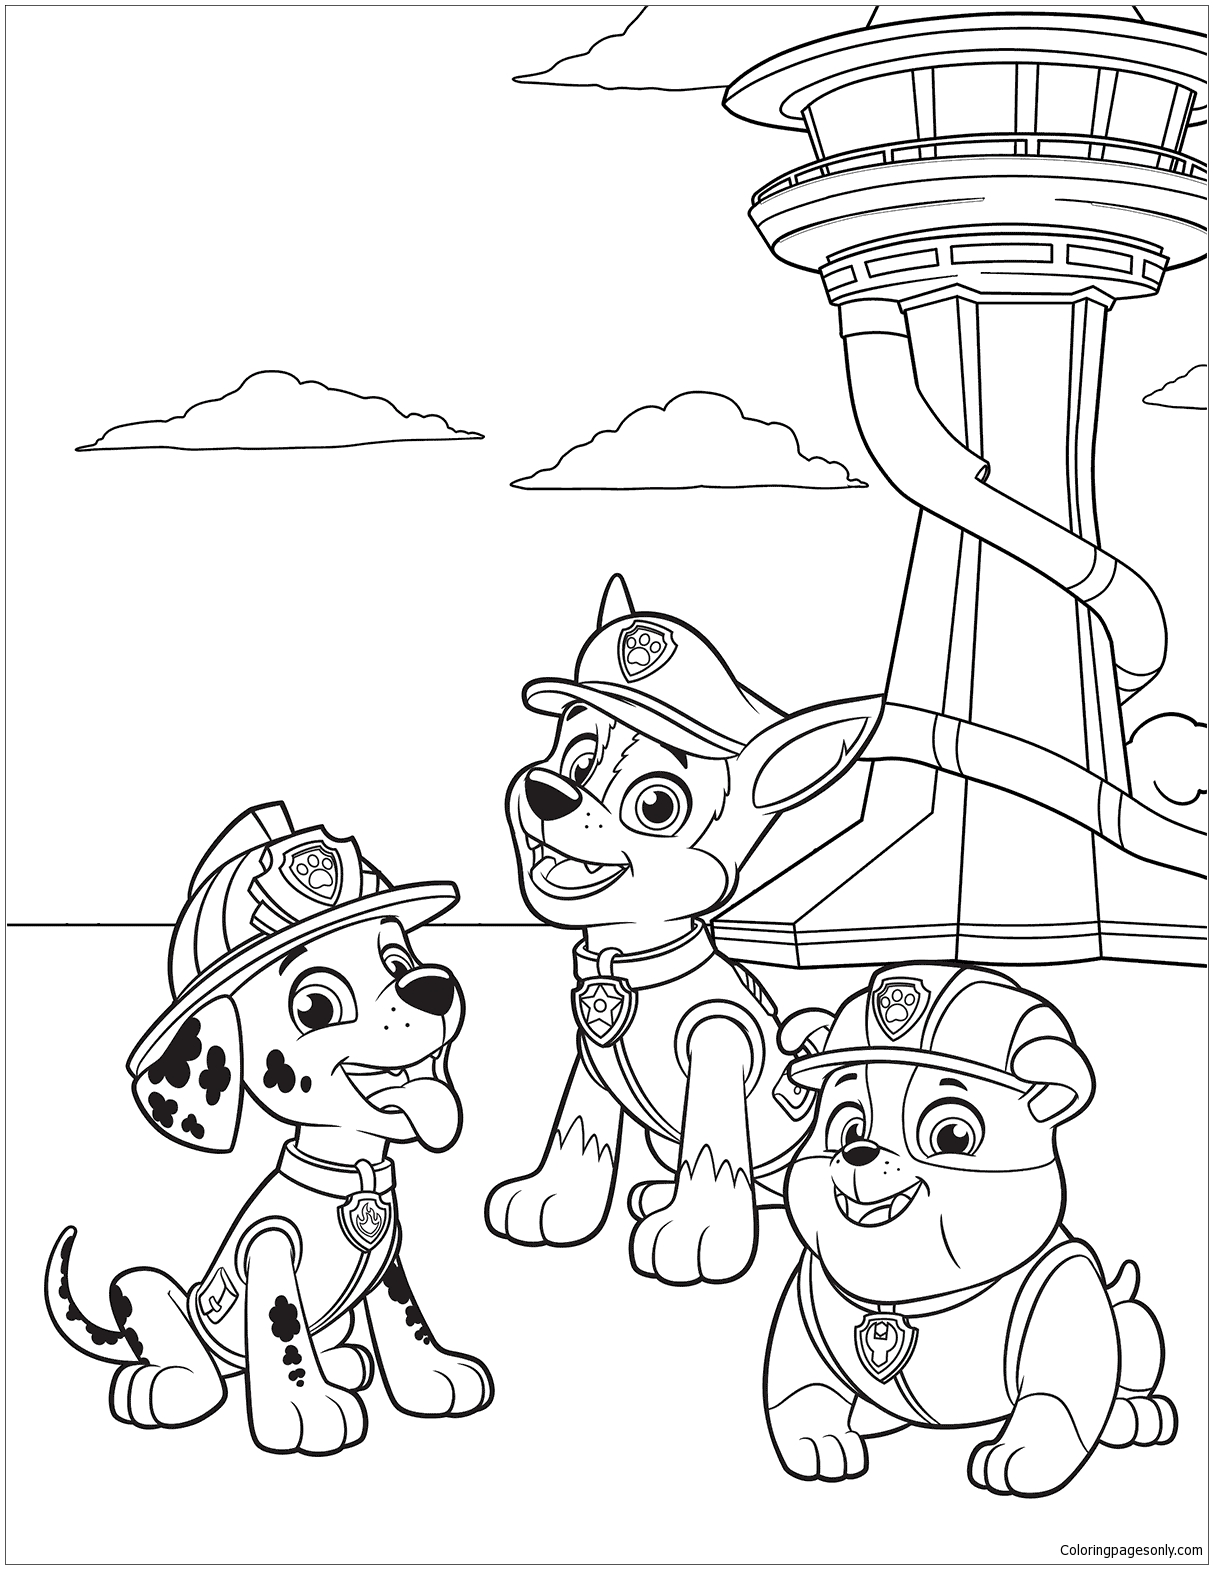 Paw Patrol 38 Coloring Page - Free Coloring Pages Online